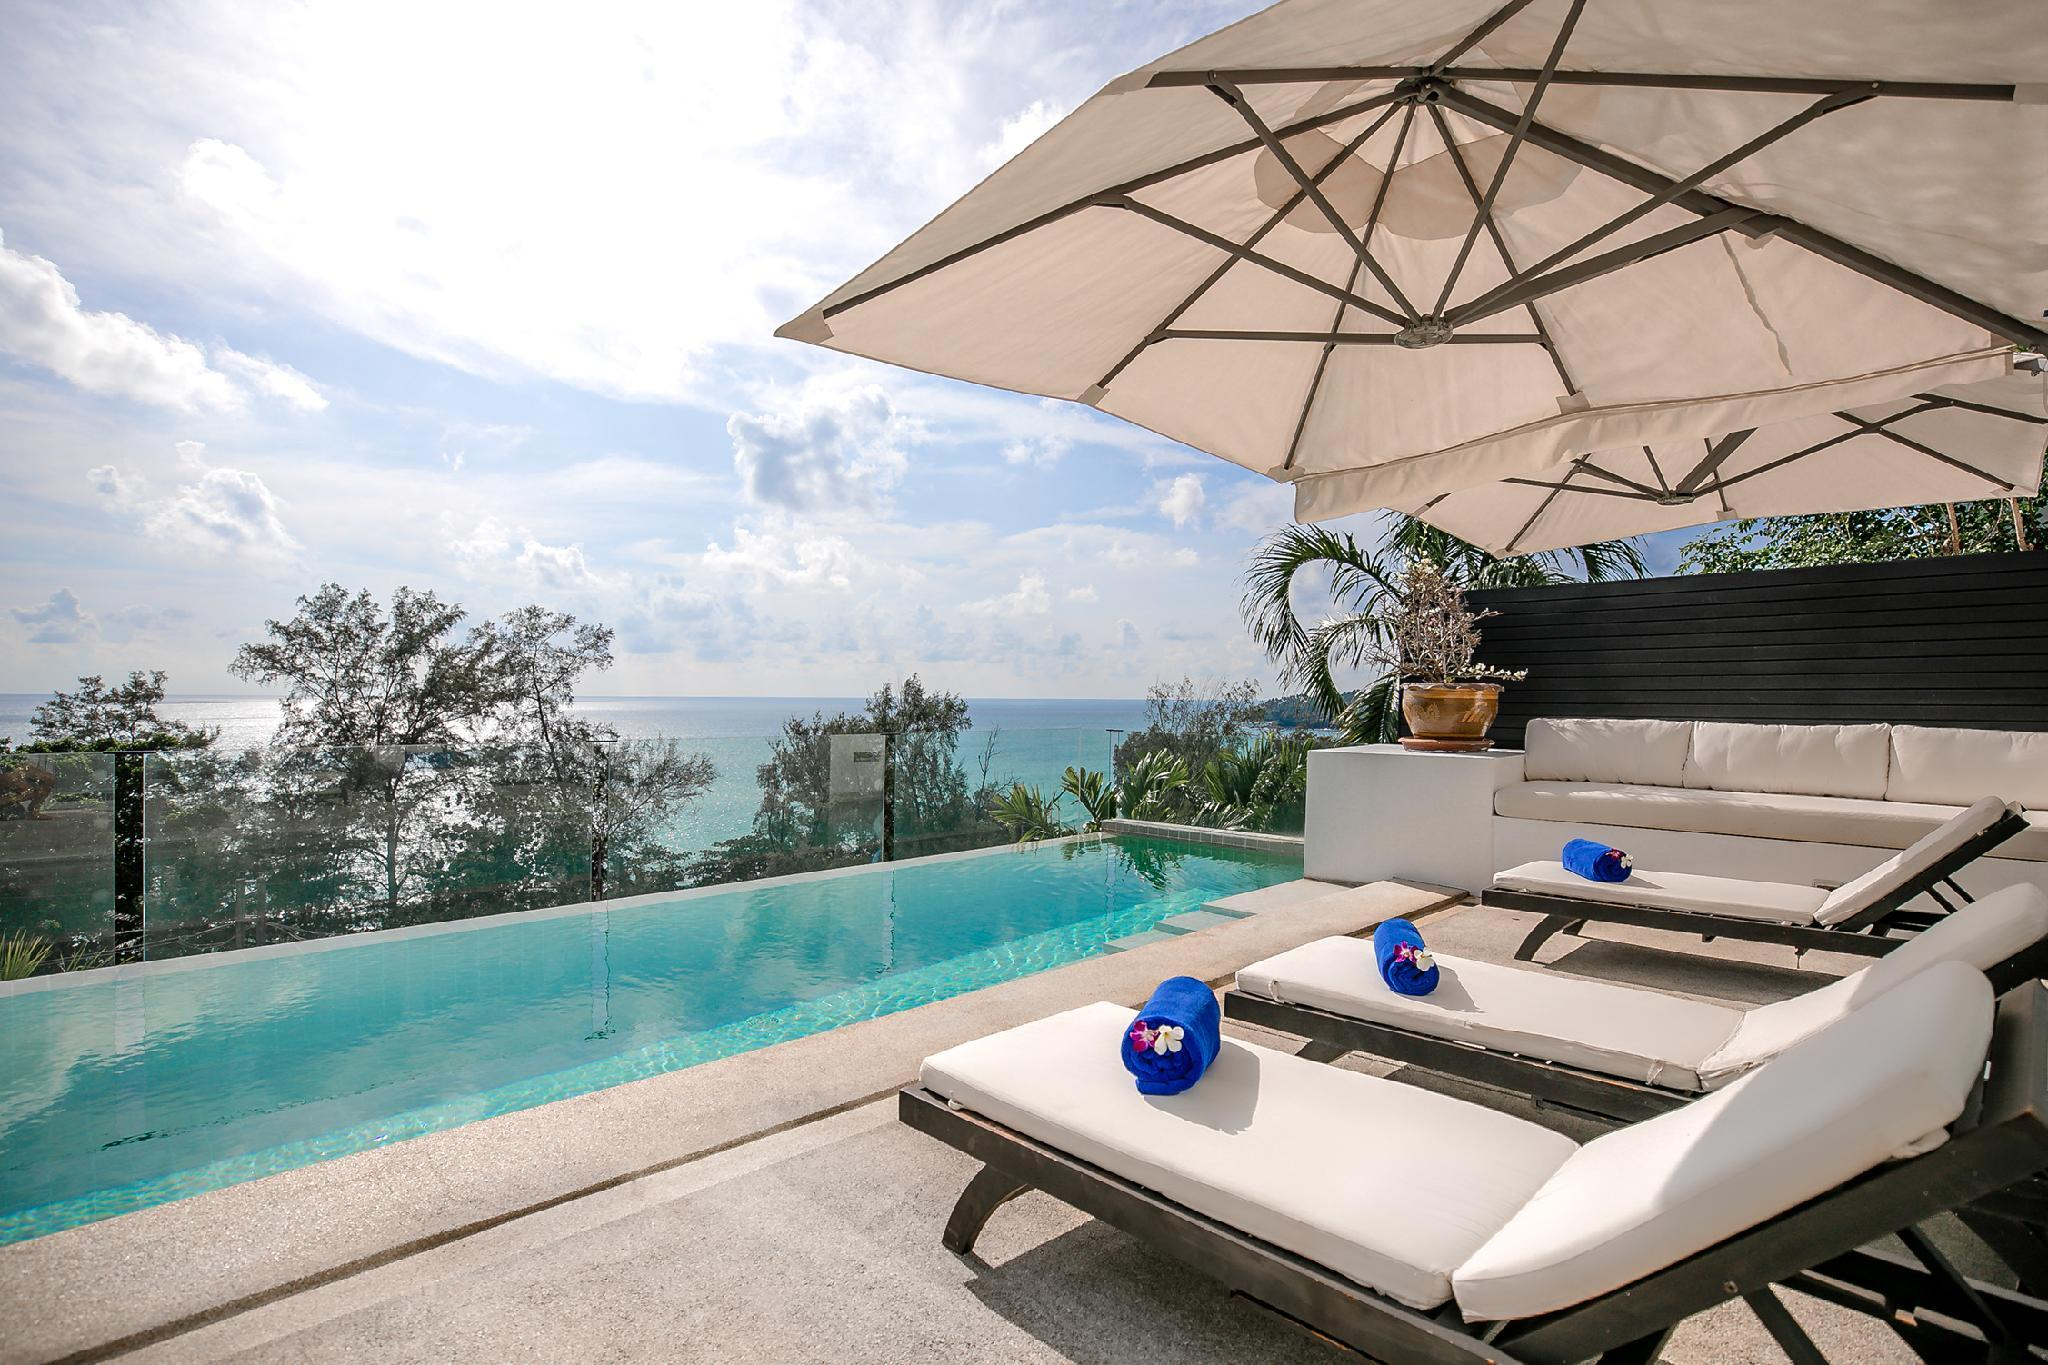 4BR Seaview Villa at Surin Beach with Private Pool